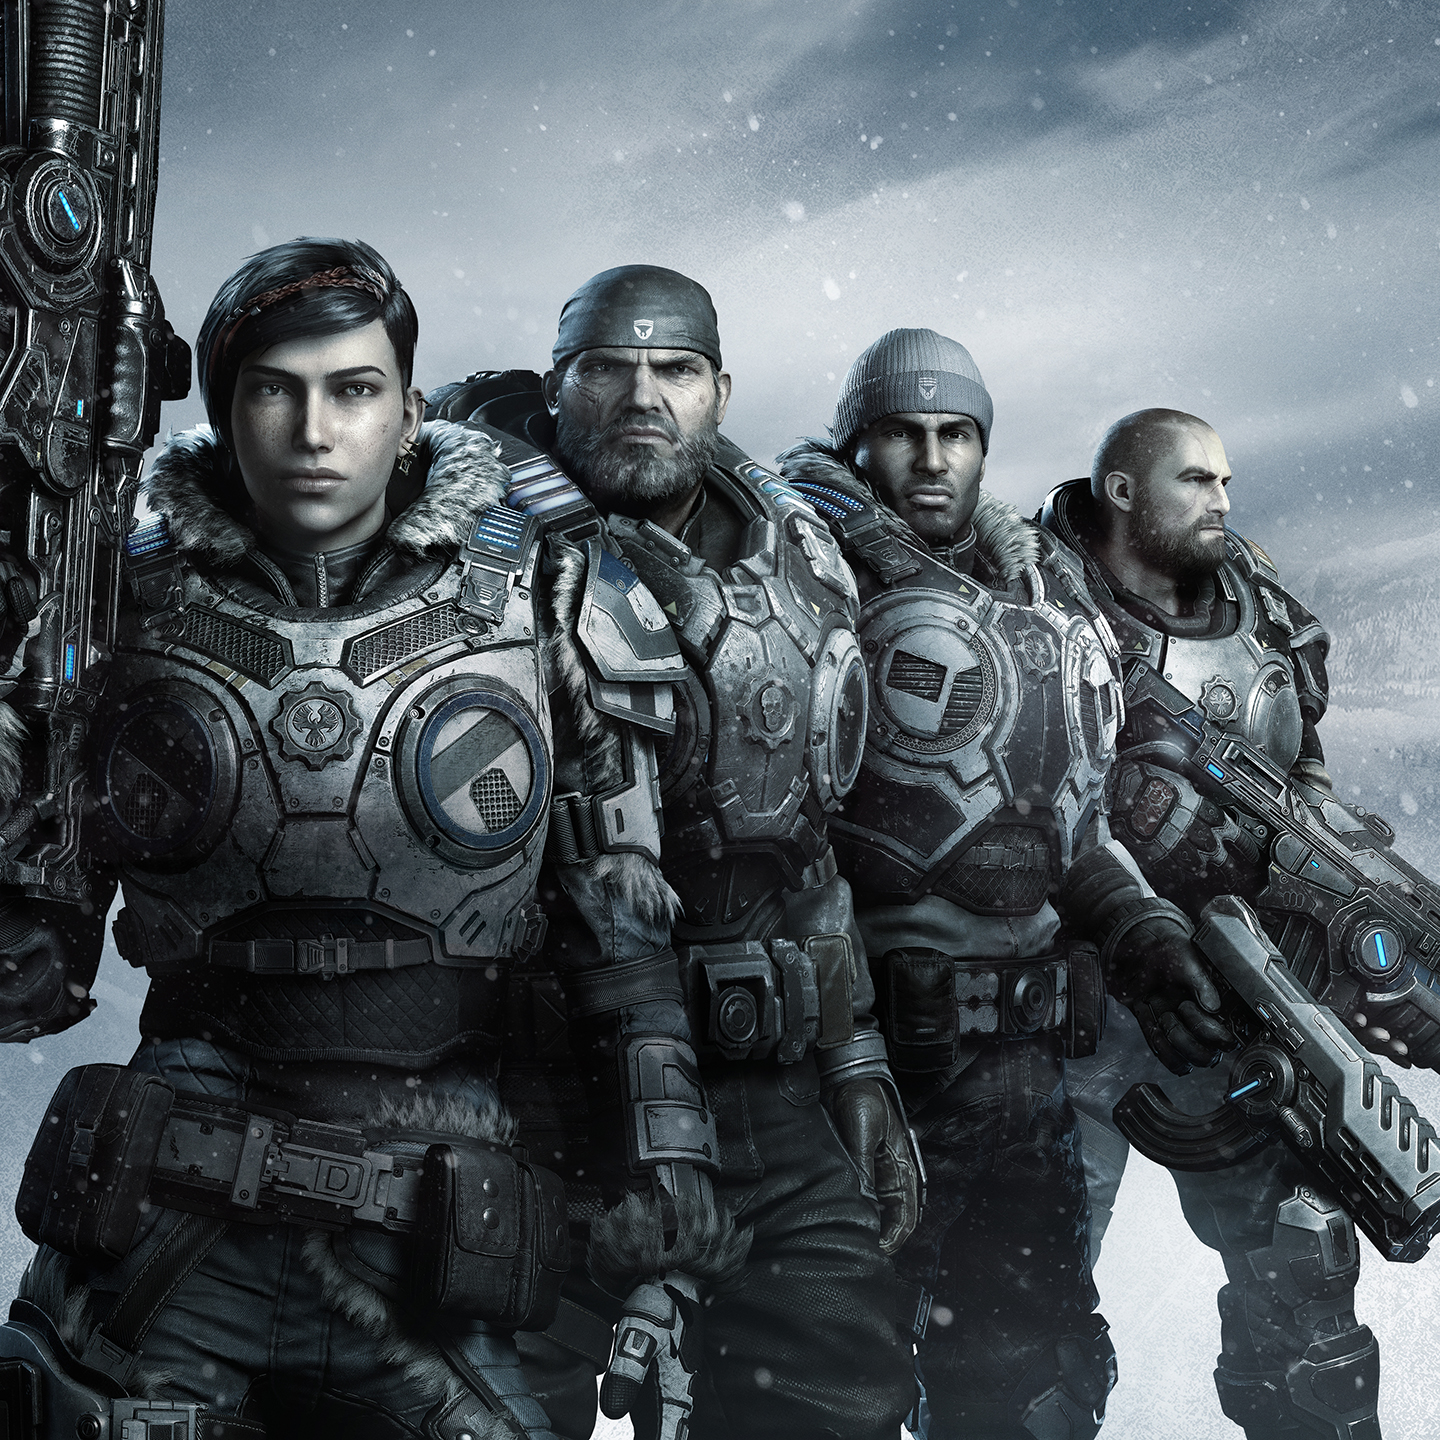 A squad of four stands assembled in front of an icy bluish white background. The image is a slightly monochromatic gray, with the hints of blue on the armor and emissives slightly more saturated. Winter Armor Kait stands in the forefront staring straight at ahead, her right arm bent as she hoists the new Lancer up against her shoulder. Armored Marcus stands just behind her to her left. He stares forward challengingly, his signature do-rag on his head, and his bushy grizzled beard slightly more gray. Winter Armored Del stands to Marcus's right holding the Talon AutoPistol in his left hand, the unique curved ammo cartridge just visible. He also looks straight ahead. And standing to Del's left is Armored JD, his injured right arm just barely visible, as holds the Lancer GL at the ready. His right arm bent, and the weapon pointing muzzle down. He alone, is looking off to his left, and away from where the rest of the squad are looking.